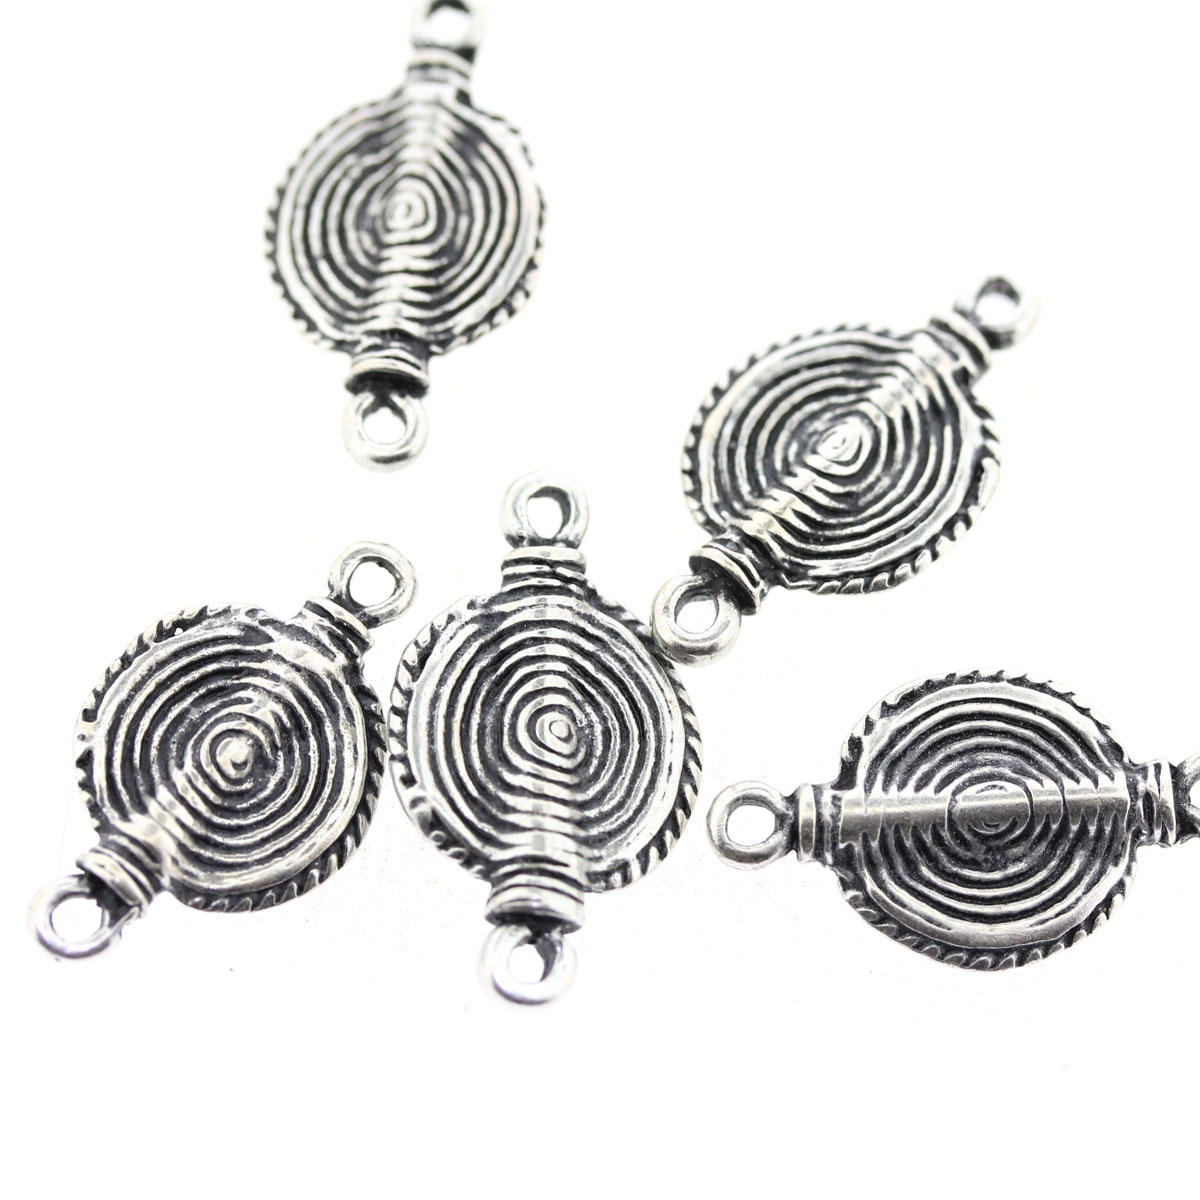 Antique Silver Swirl Connector Charm Bead